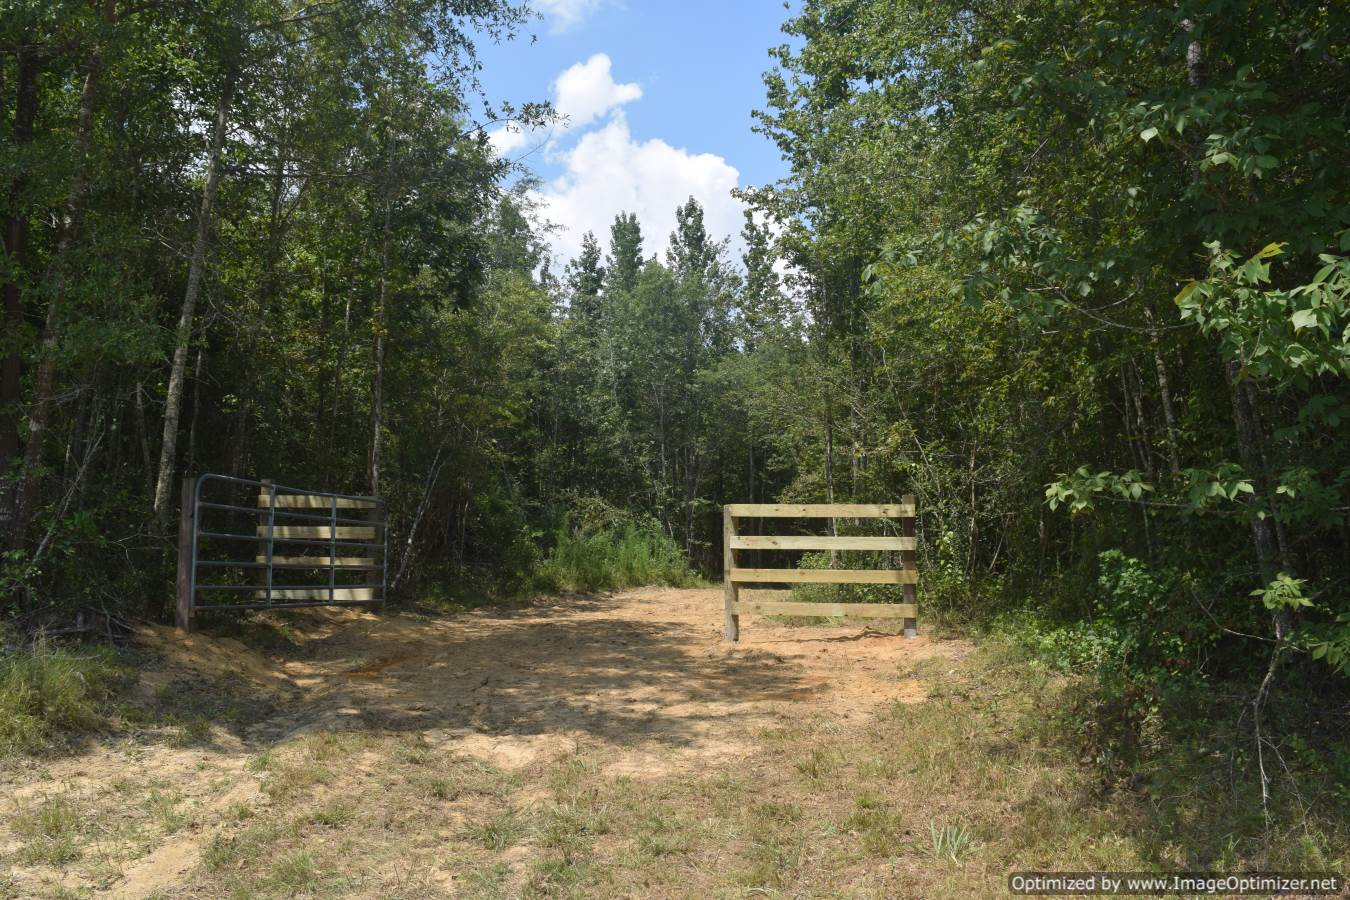 land-for-sale-in-smith-county-ms